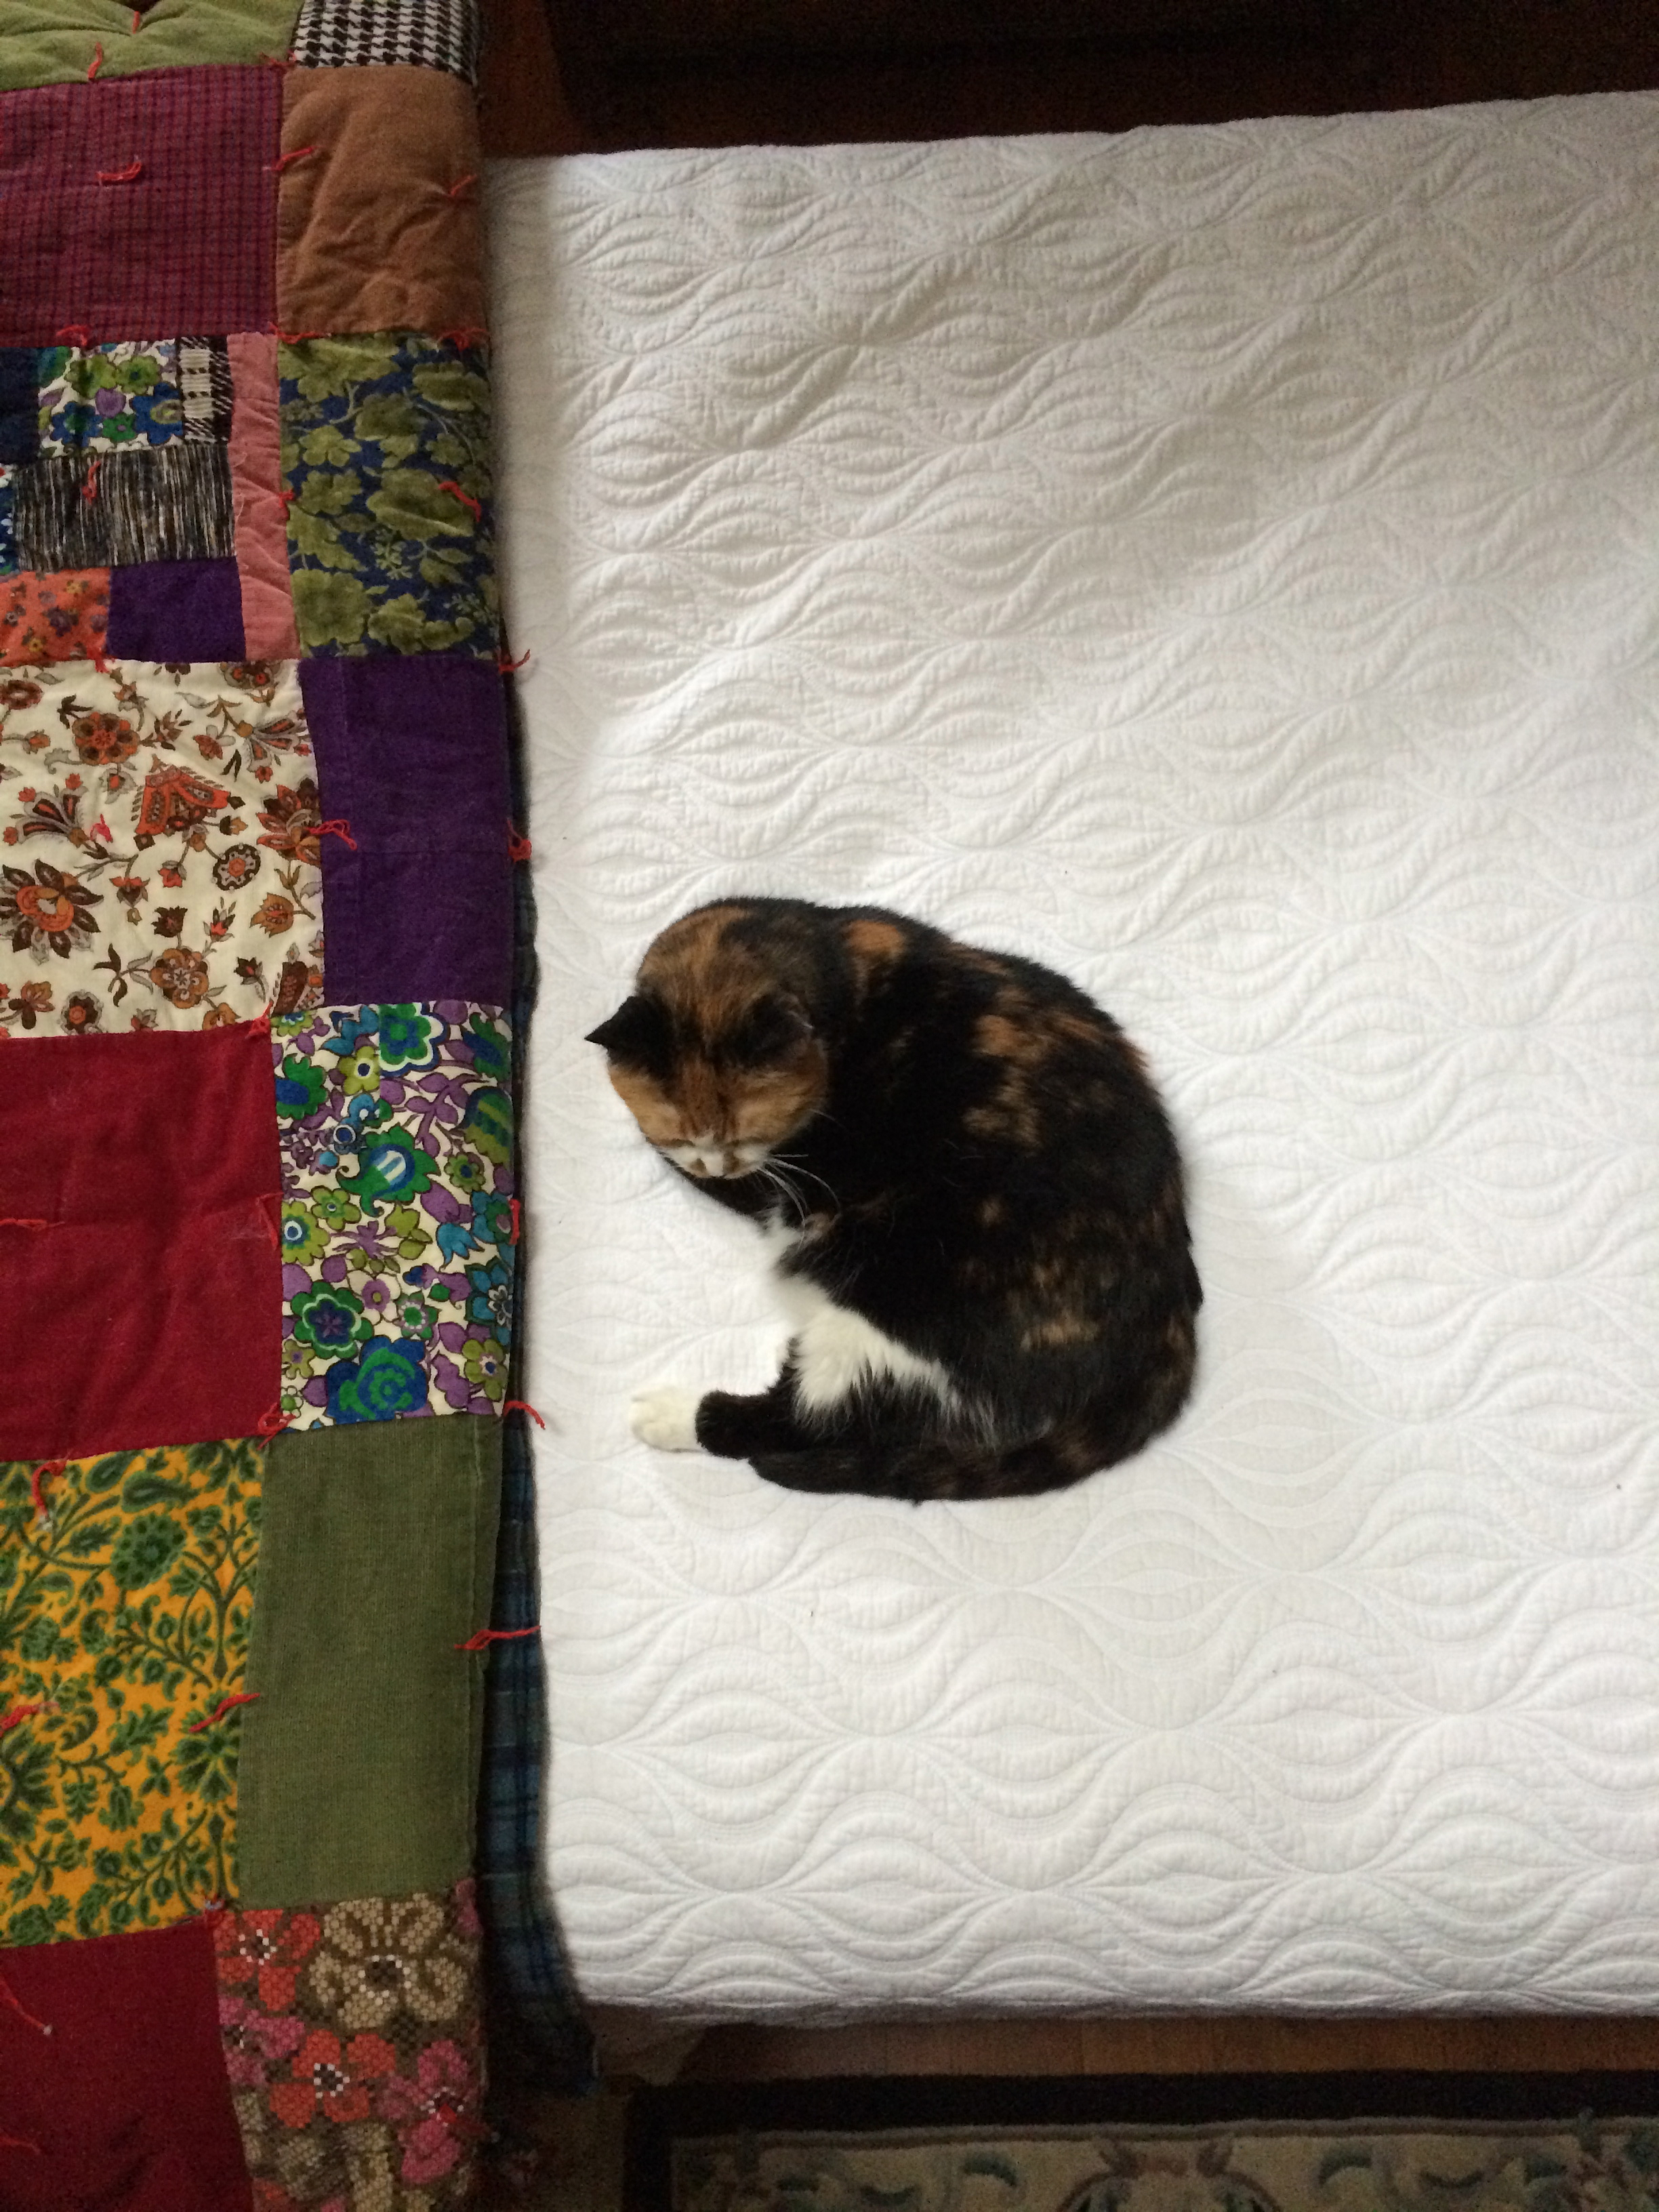 My cat Pippilotti (named after Pippilotti Rist) on my brother's bed